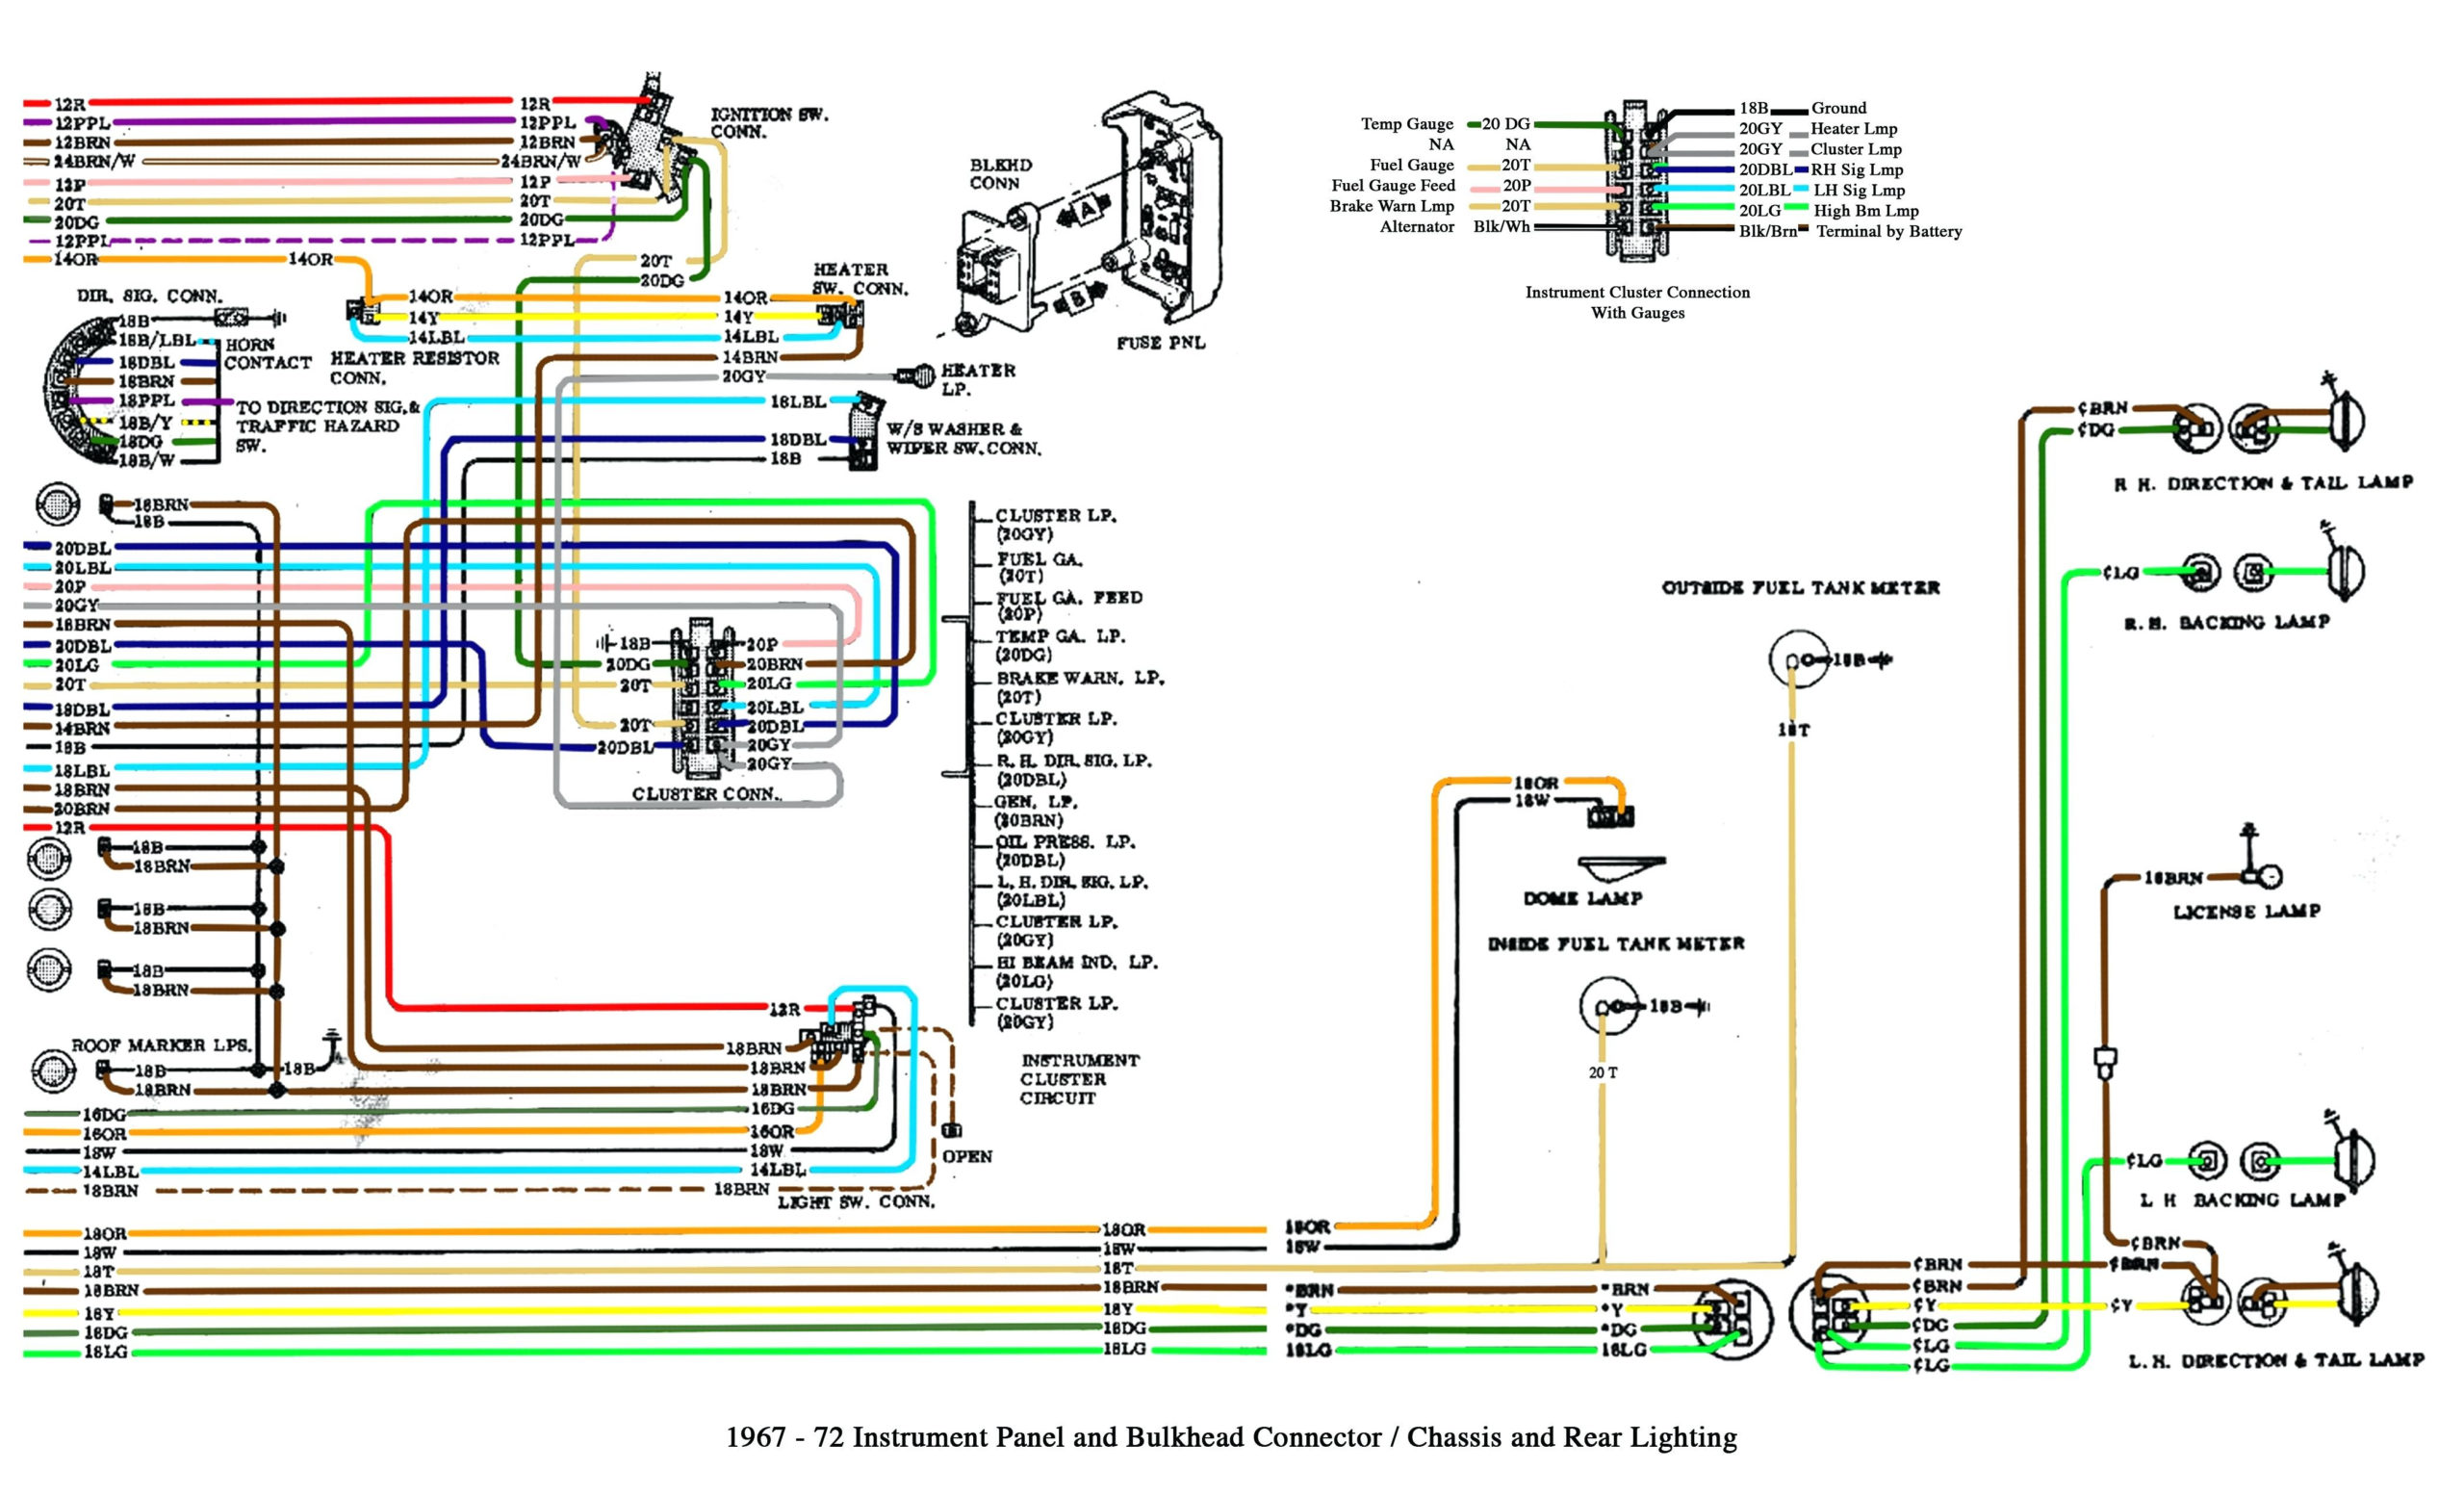 2005 Chevy Silverado Trailer Wiring Diagram